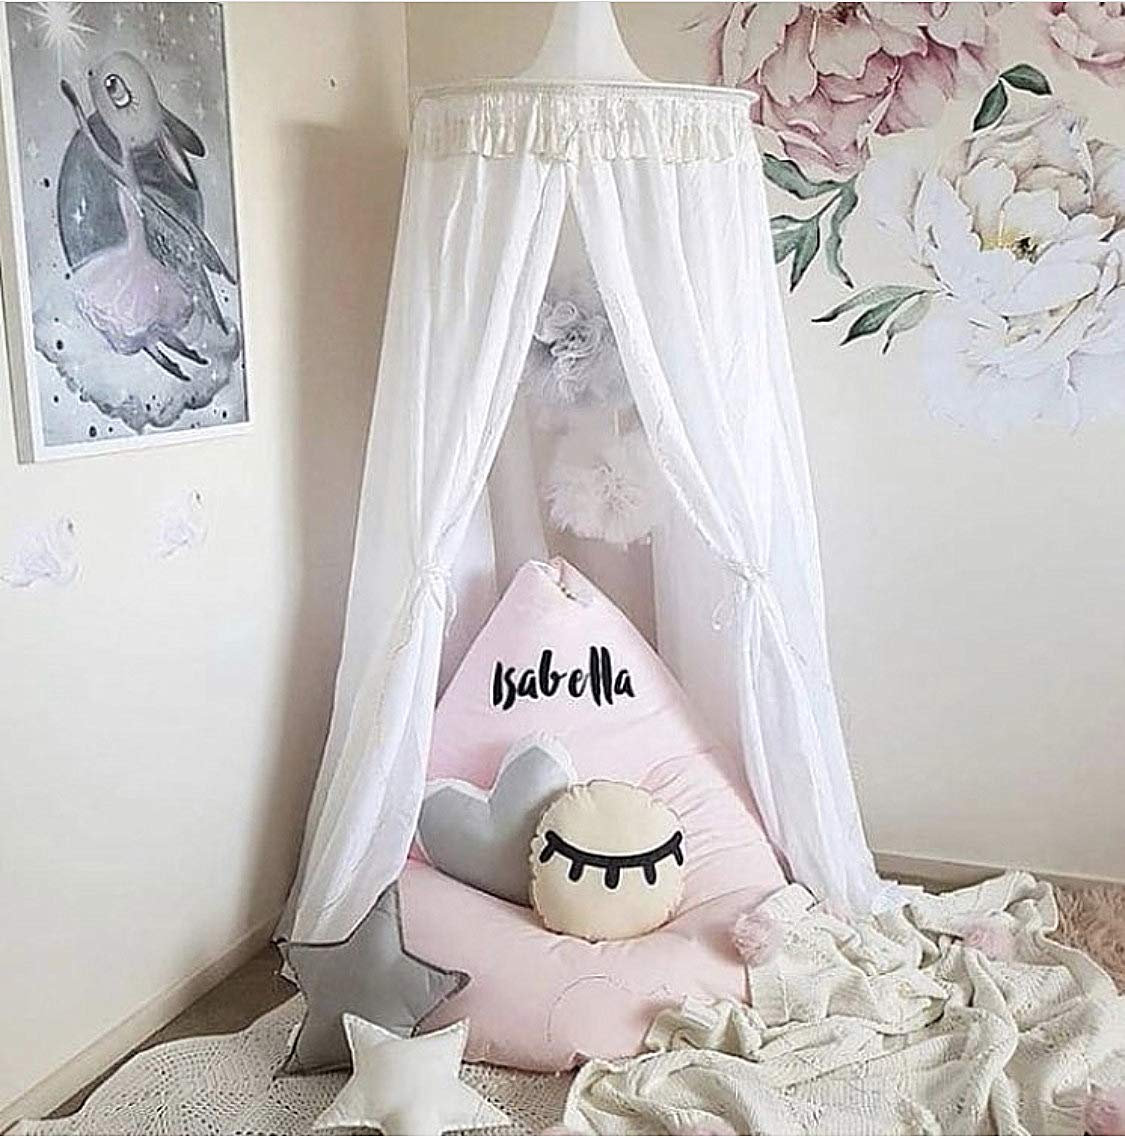 Bed Canopy Round Dome with Tassel, Big Size Cotton Bed Canopy, Cotton Mosquito Net, Bed Canopy for Reading Room, Kids Bedroom Decoration, 60240cm (White)